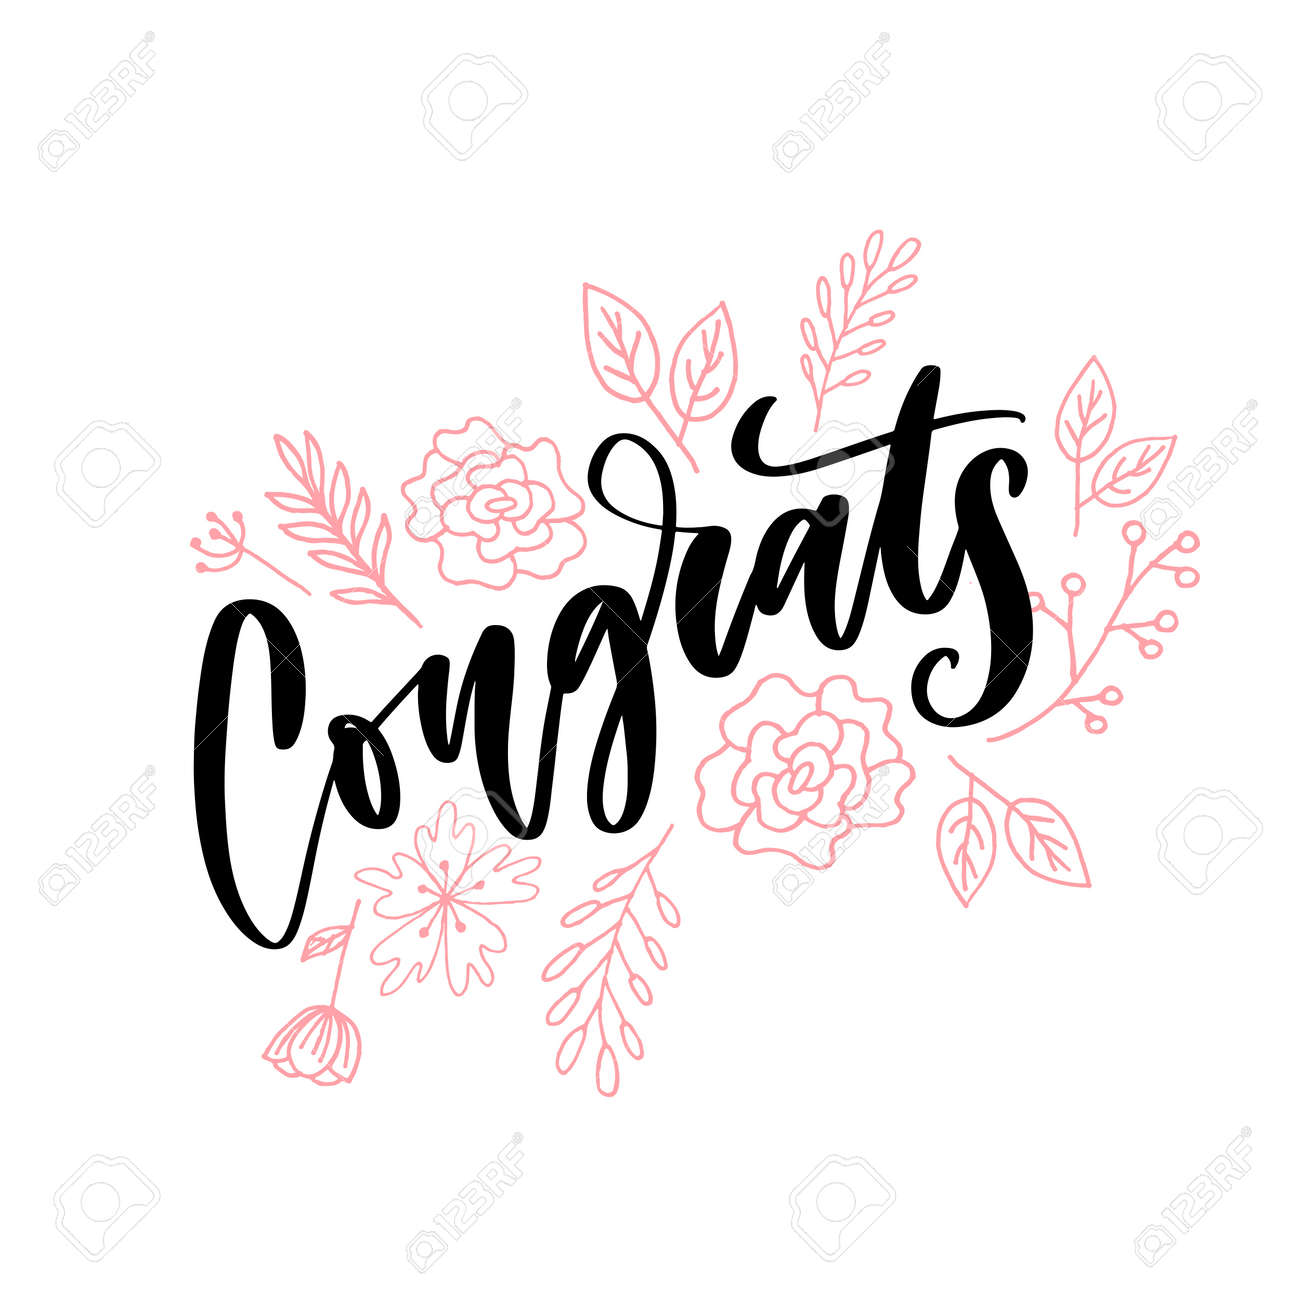 image relating to Congratulations Card Printable referred to as Congrats hand penned lettering for congratulations card, greeting..